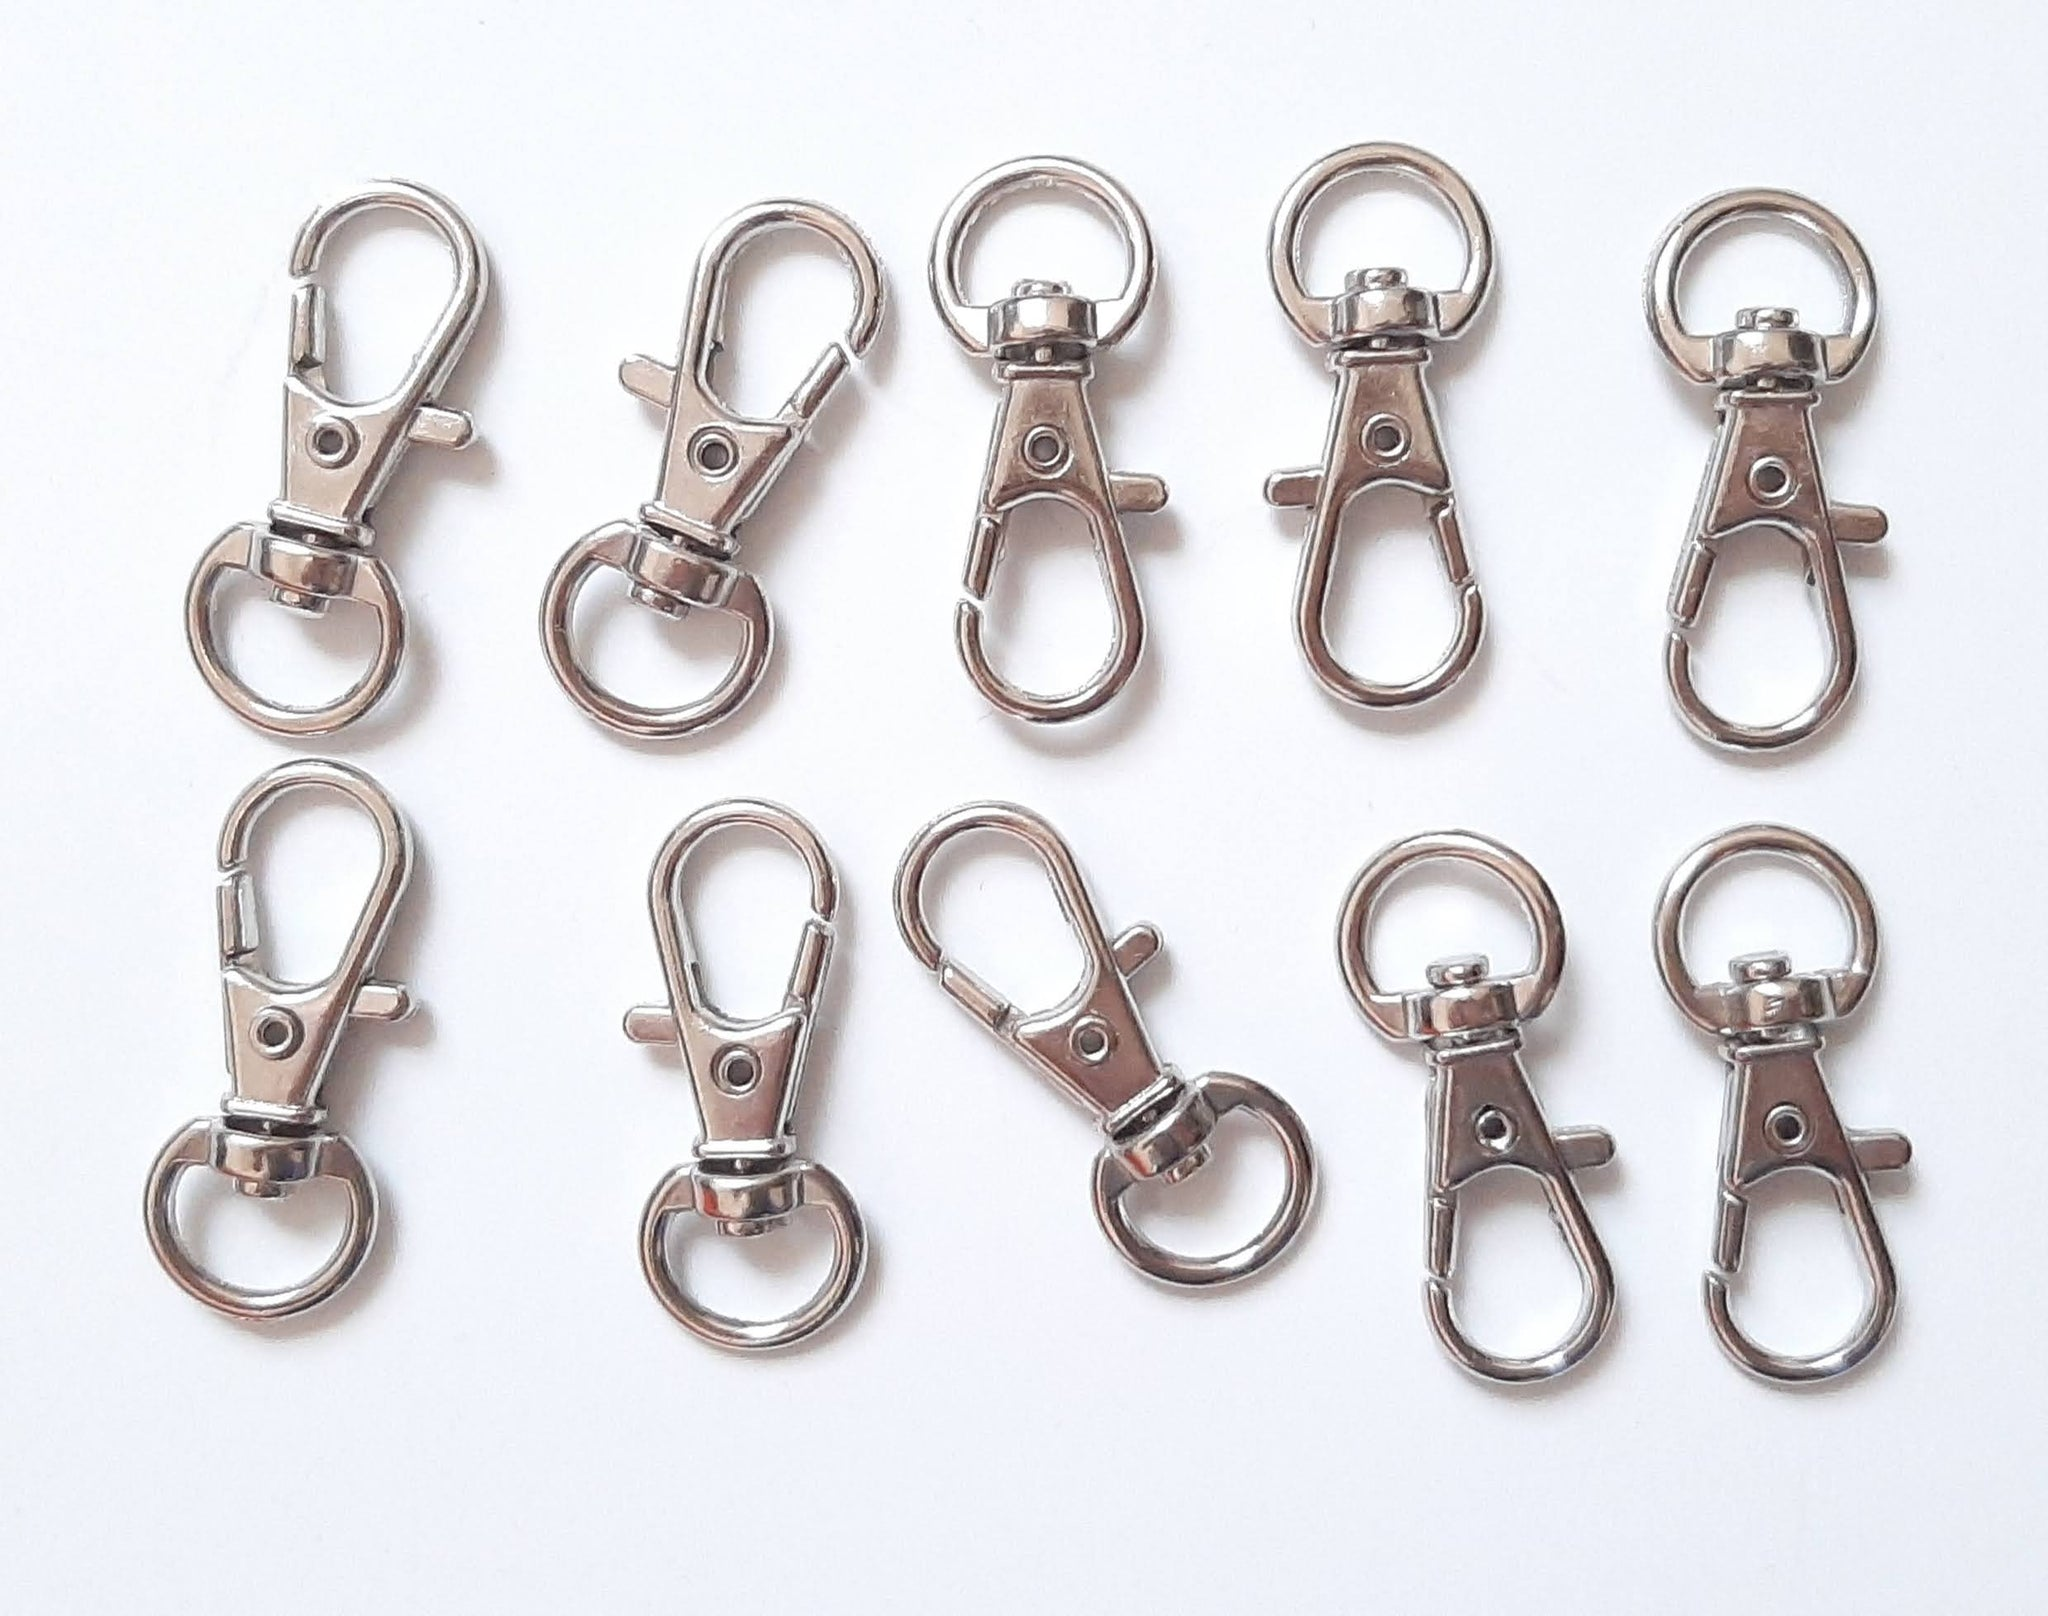 Set of 10 Large Keychain/Badge Clips for Making Face Mask Chain Holders